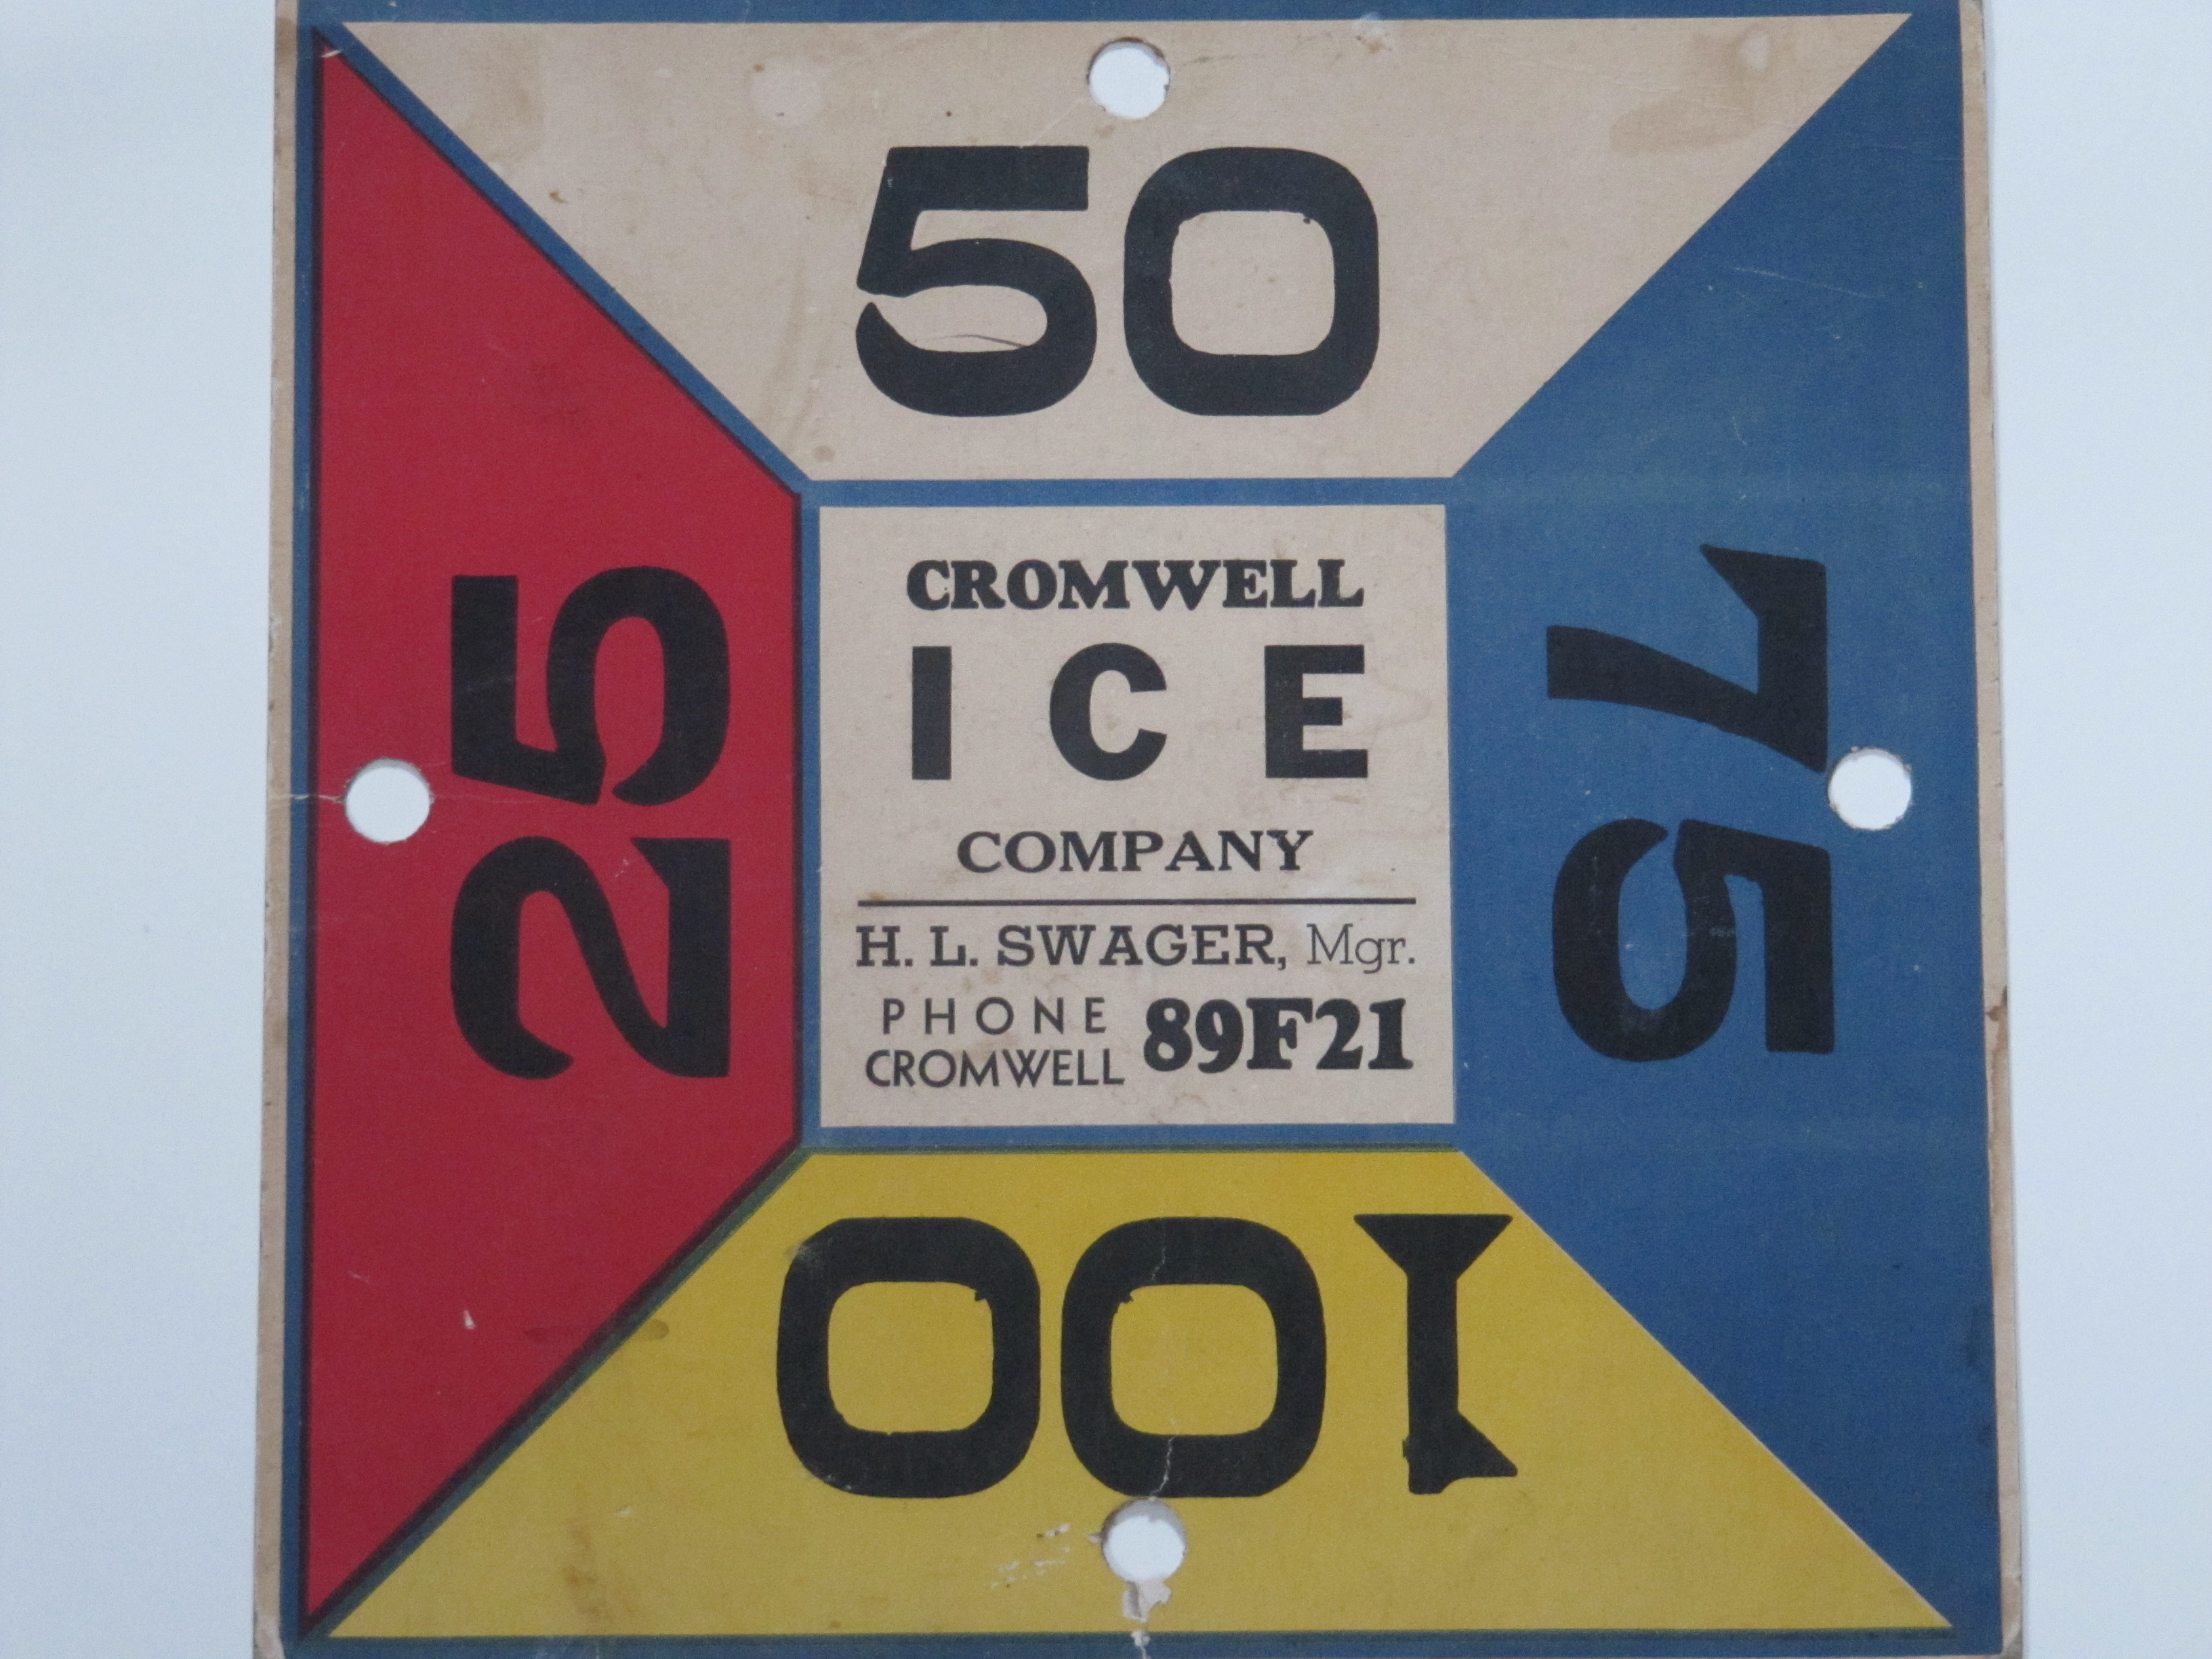 Cromwell Ice Co.